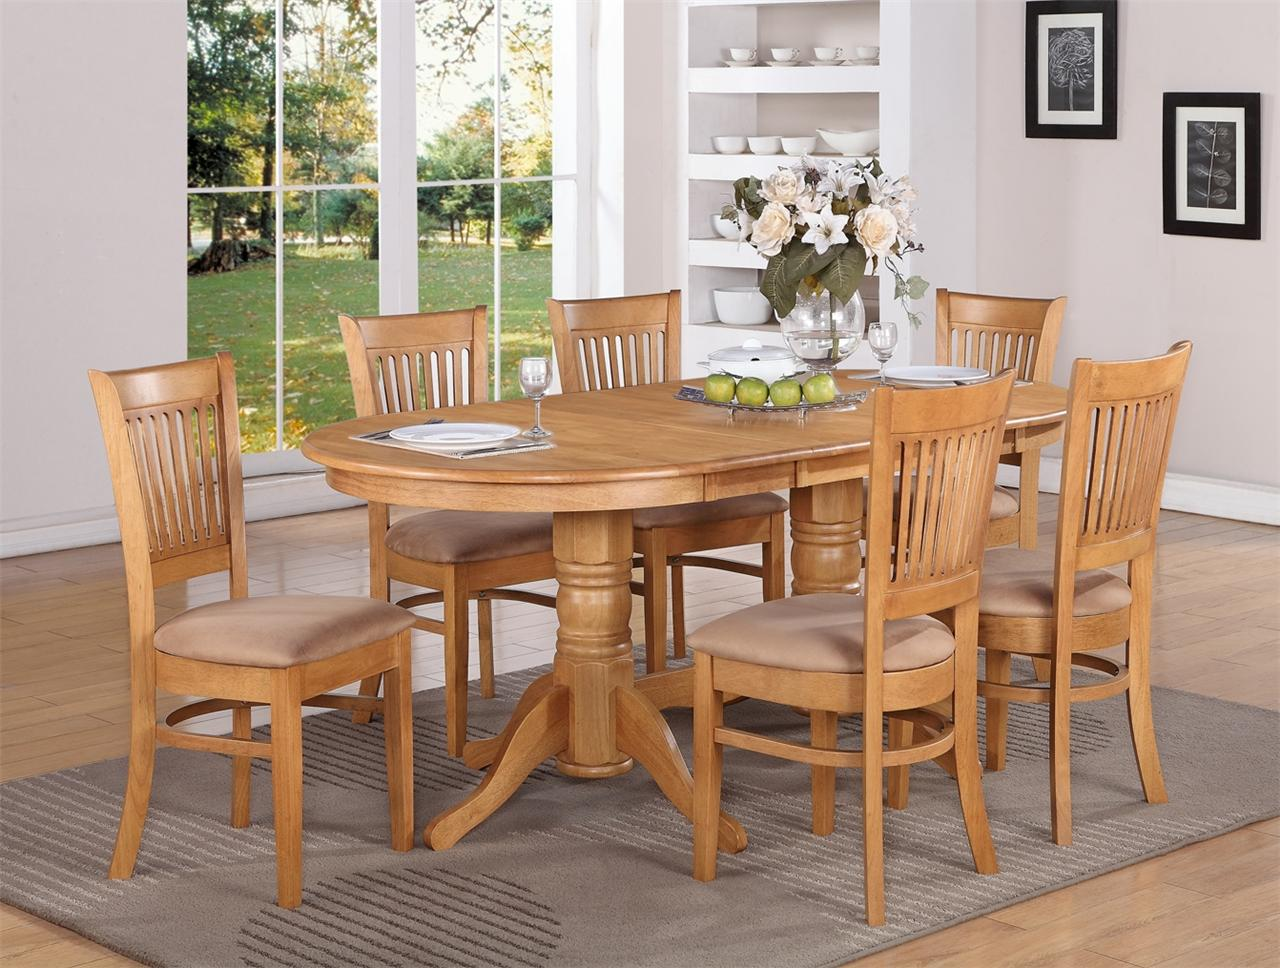 Oblong Country Kitchen Table And Chairs